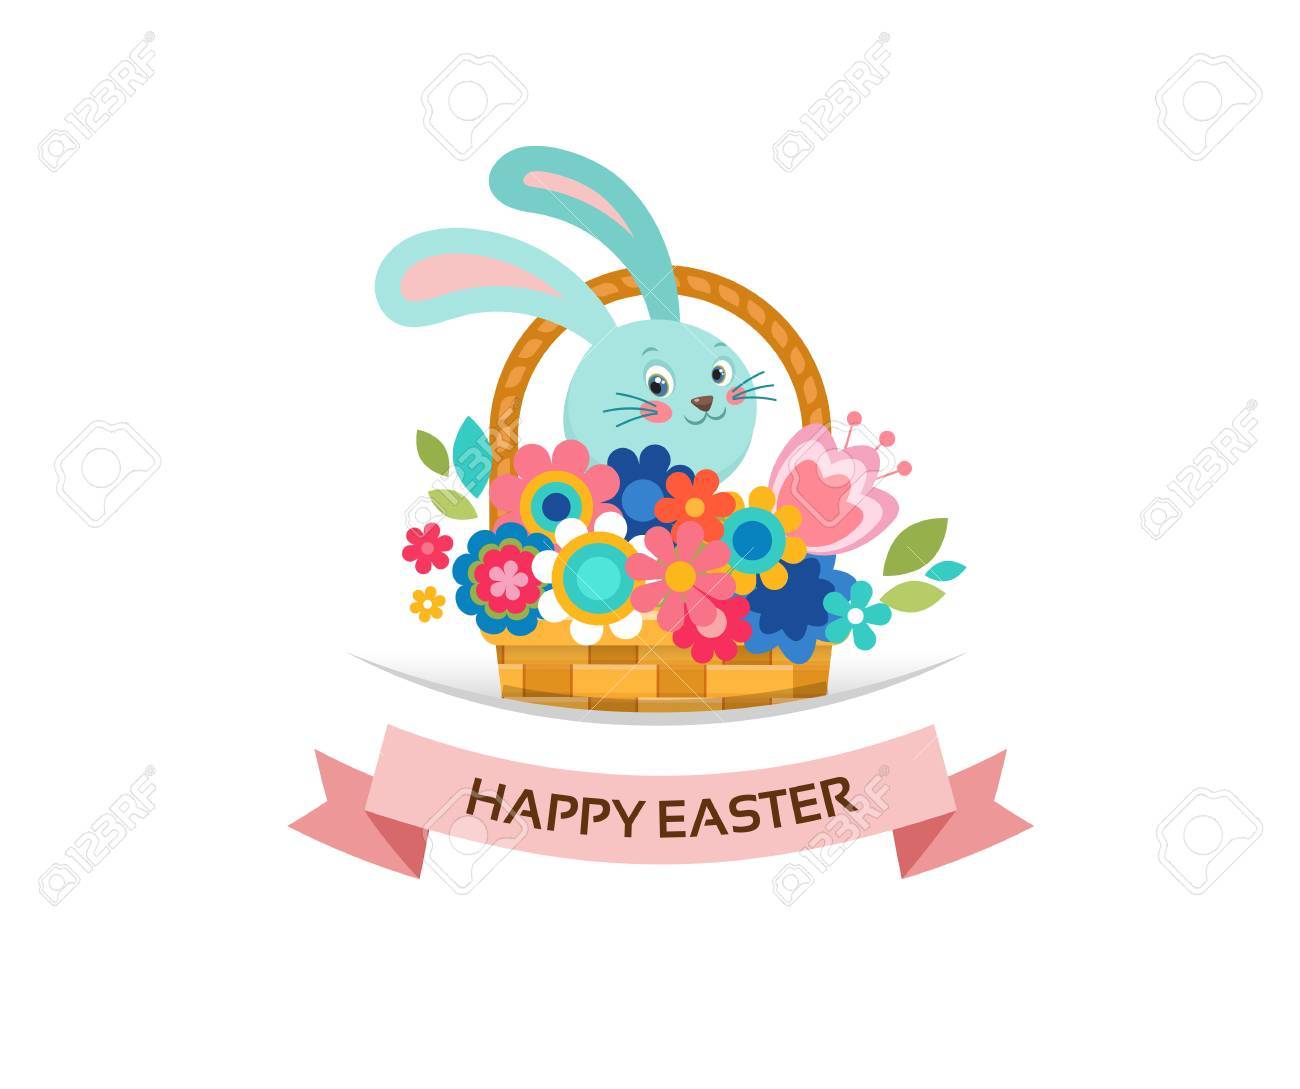 Happy Easter Greeting Card Bunny In Basket With Flowers And